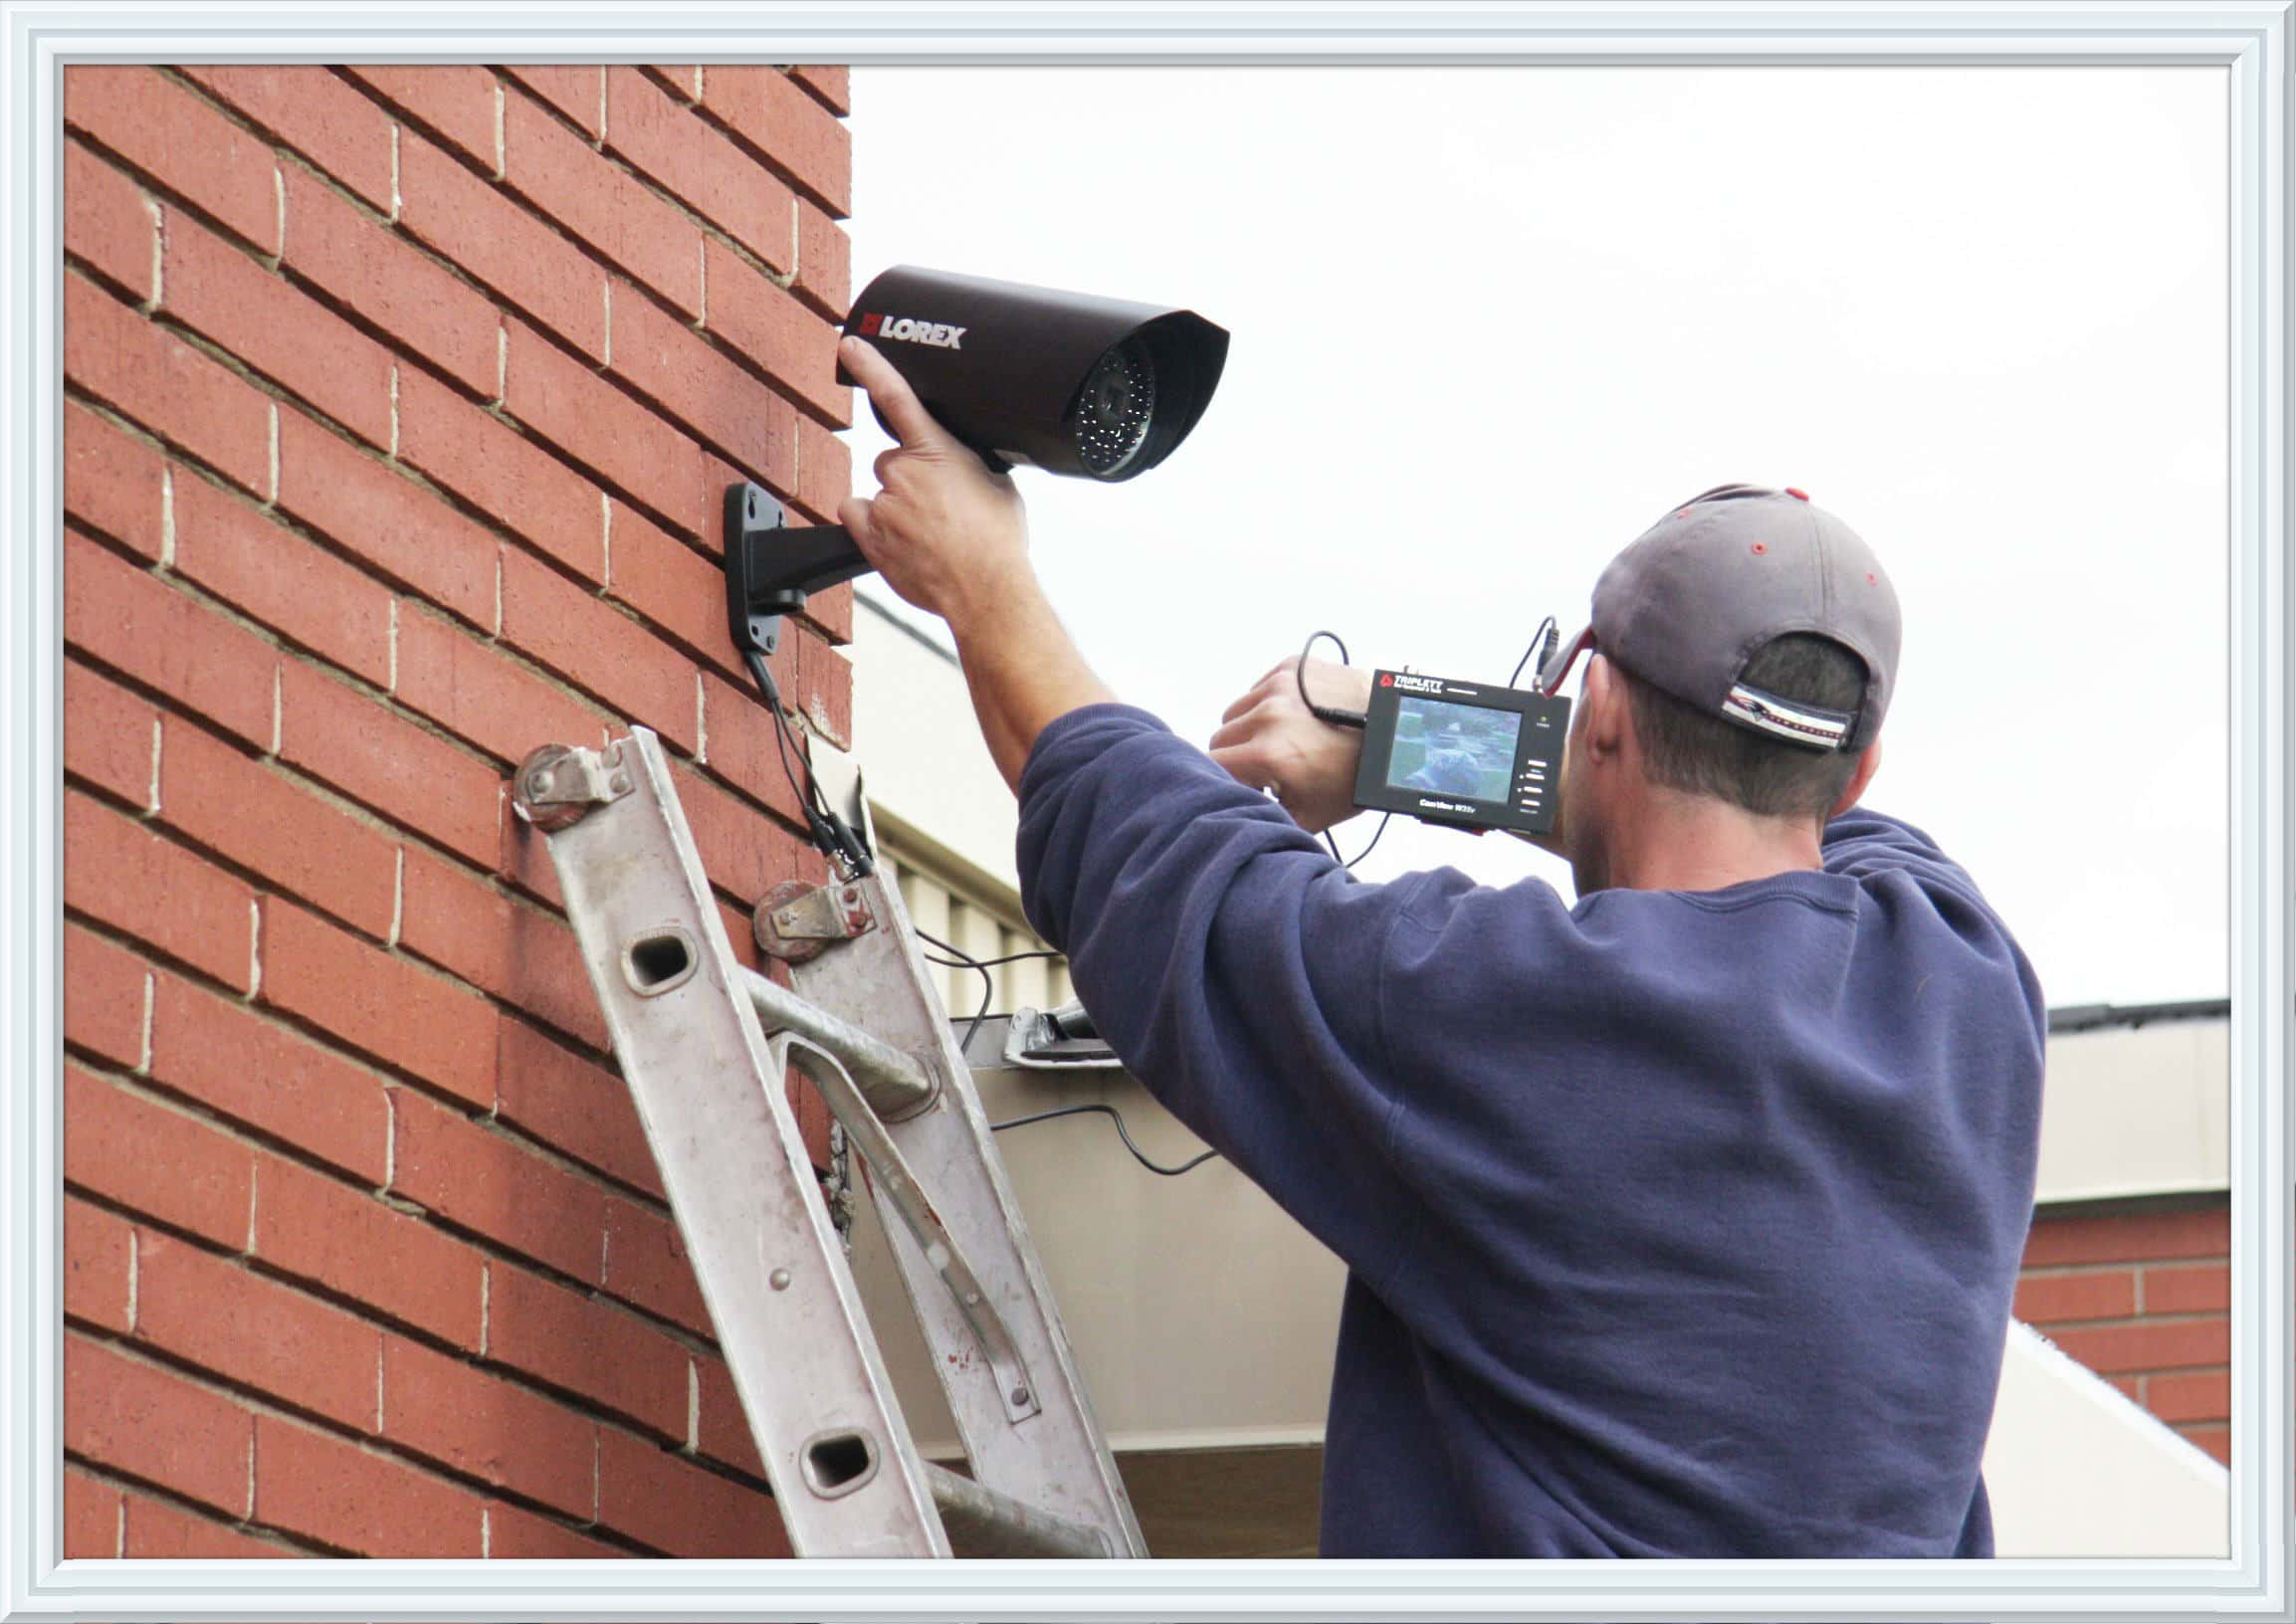 security camera installation how to make electrical wiring diagrams cameras 7 day locksmith